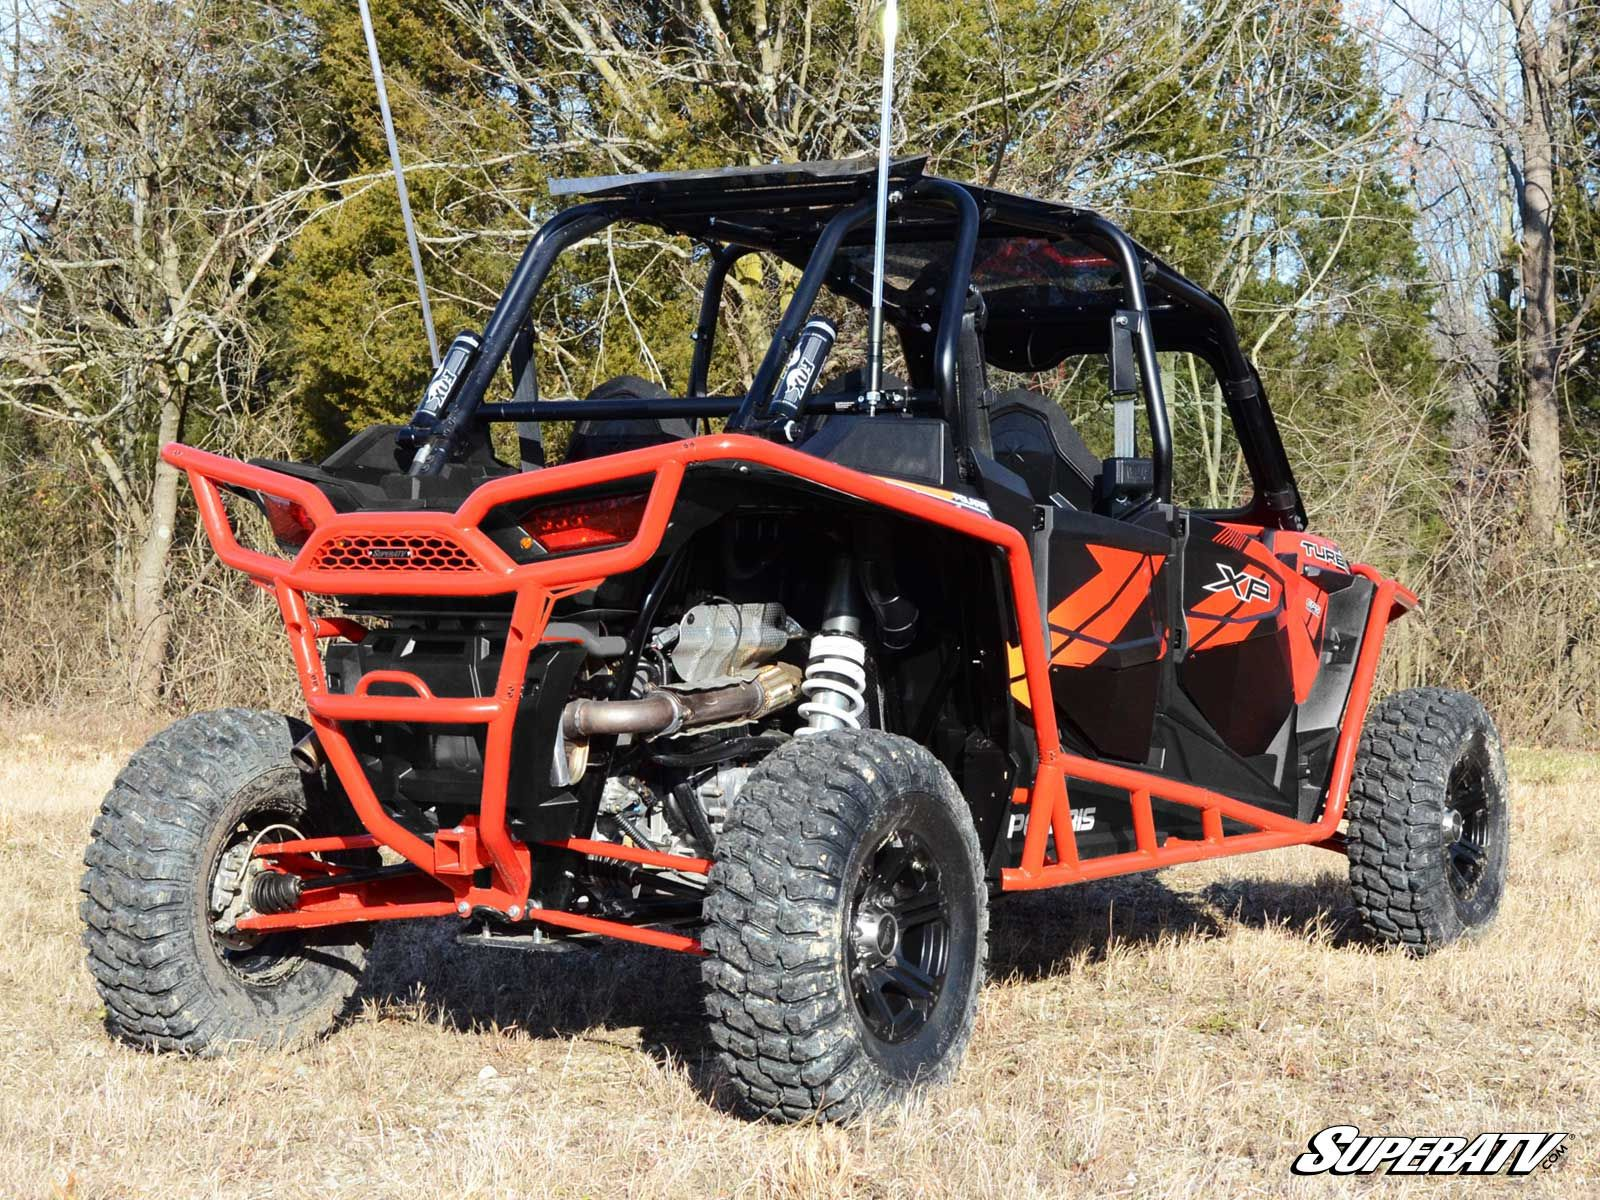 super atv full protection kit for the polaris rzr xp 1000. Black Bedroom Furniture Sets. Home Design Ideas